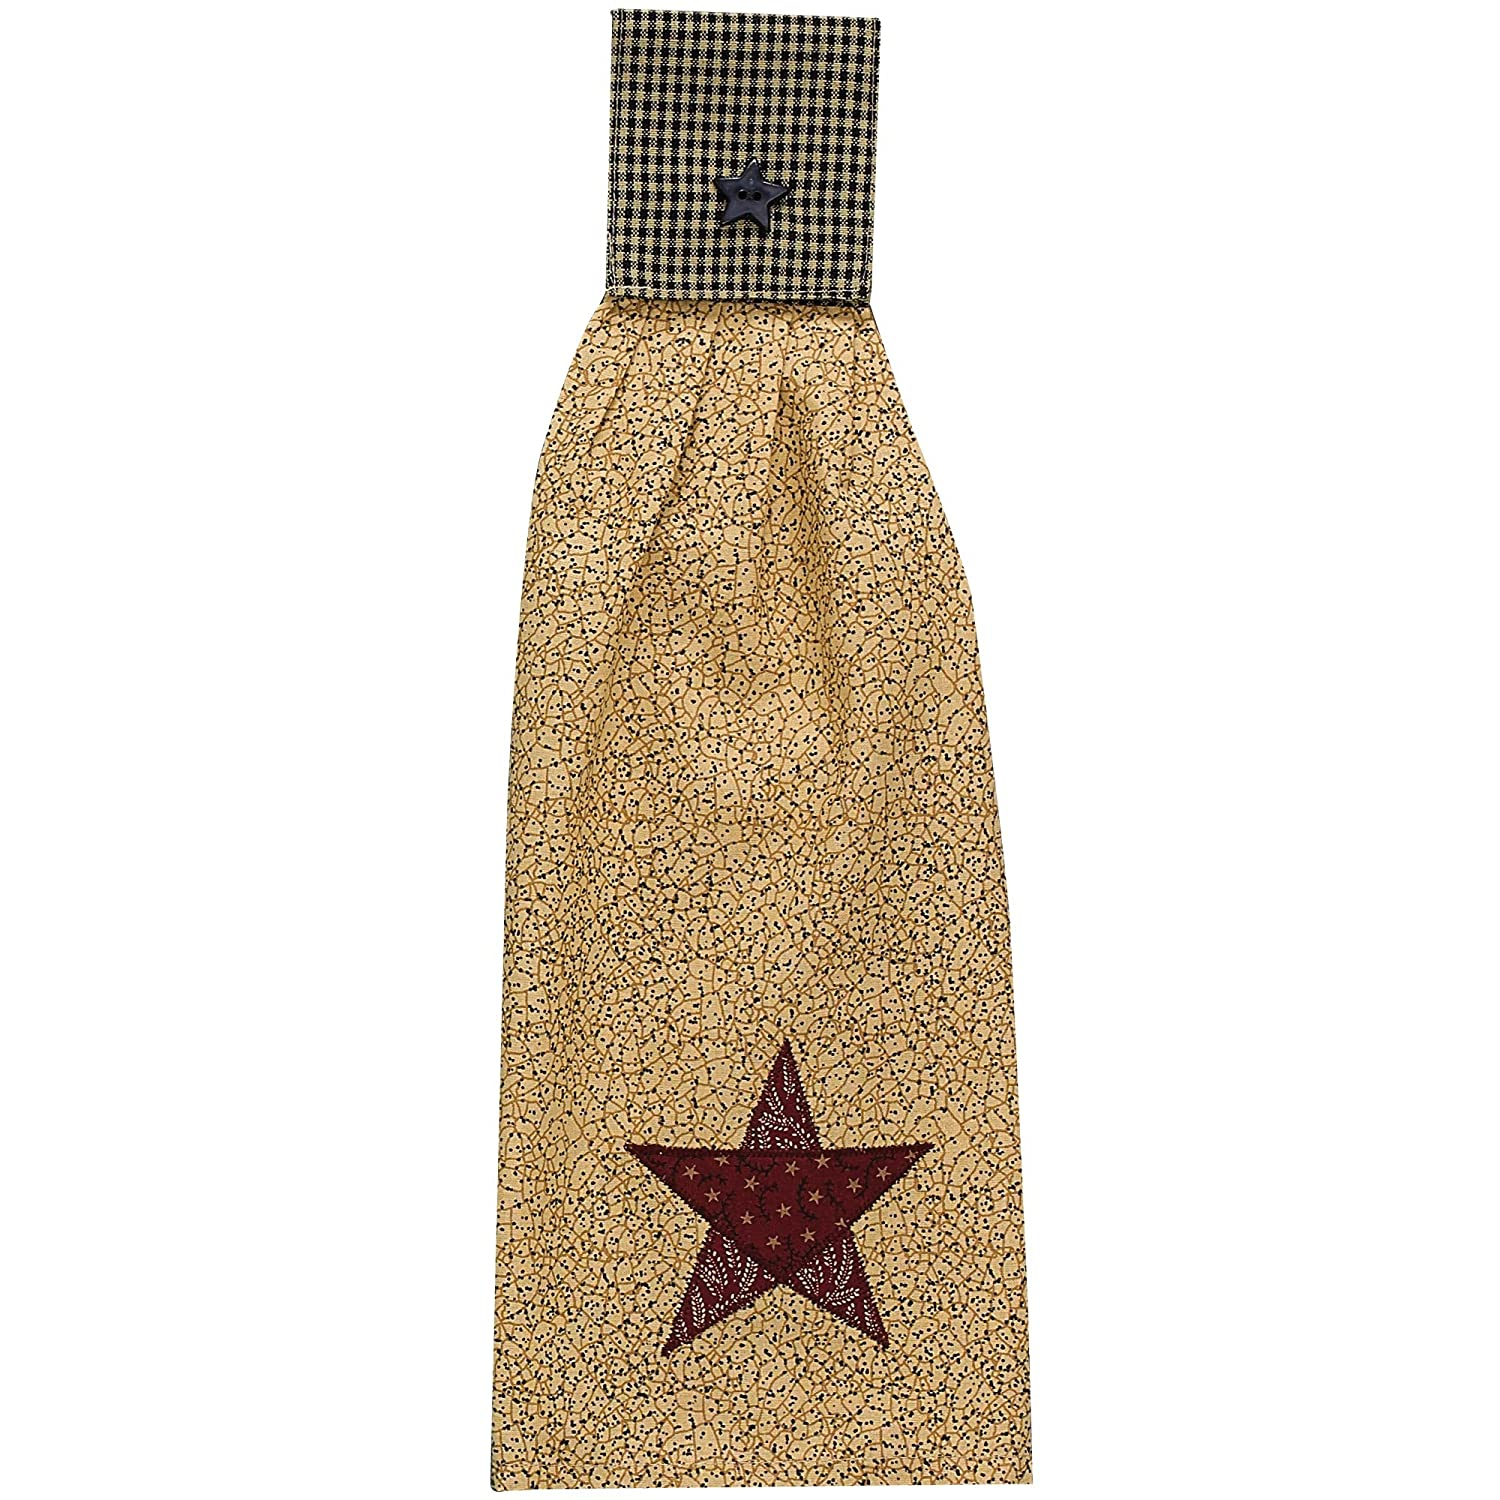 Park Designs Country Star Hand Towel